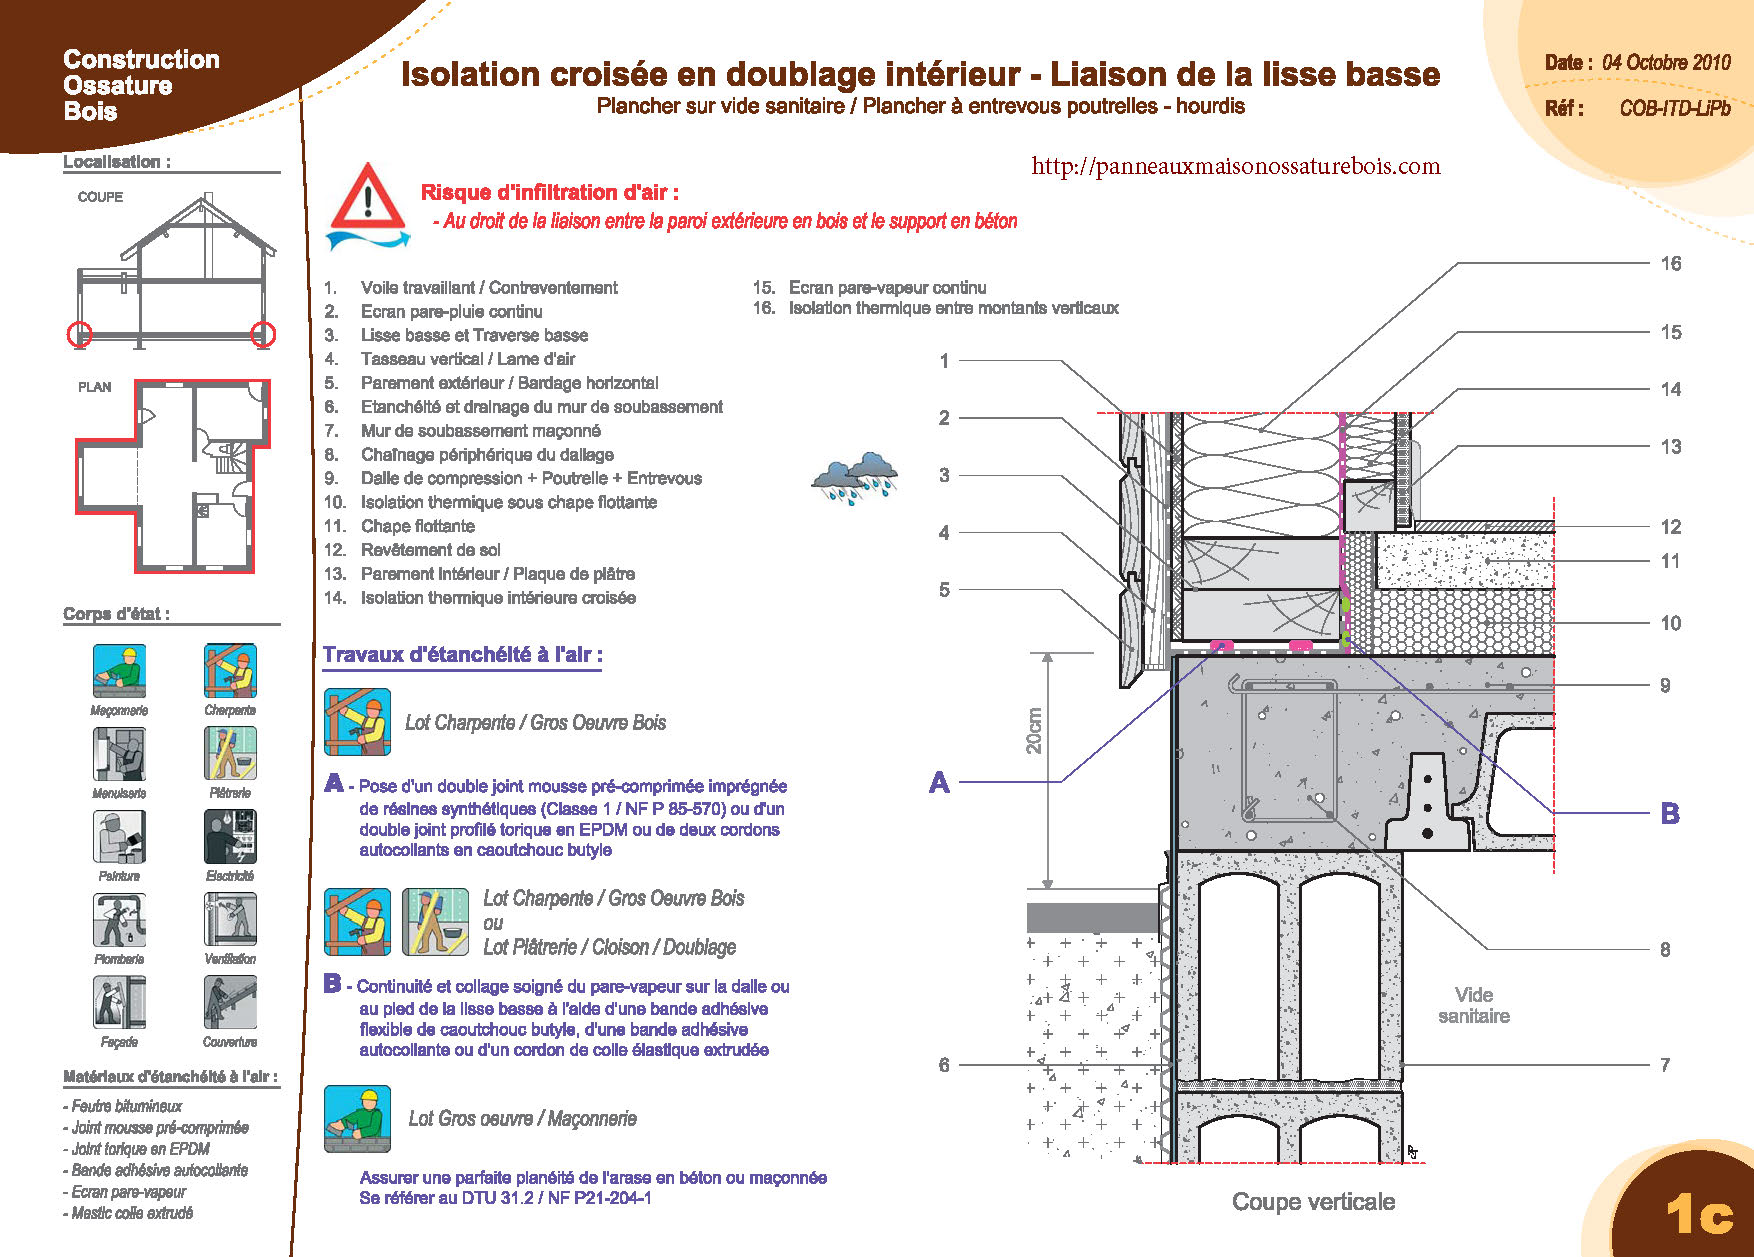 coupes construtions ossature bois complets_Page_08